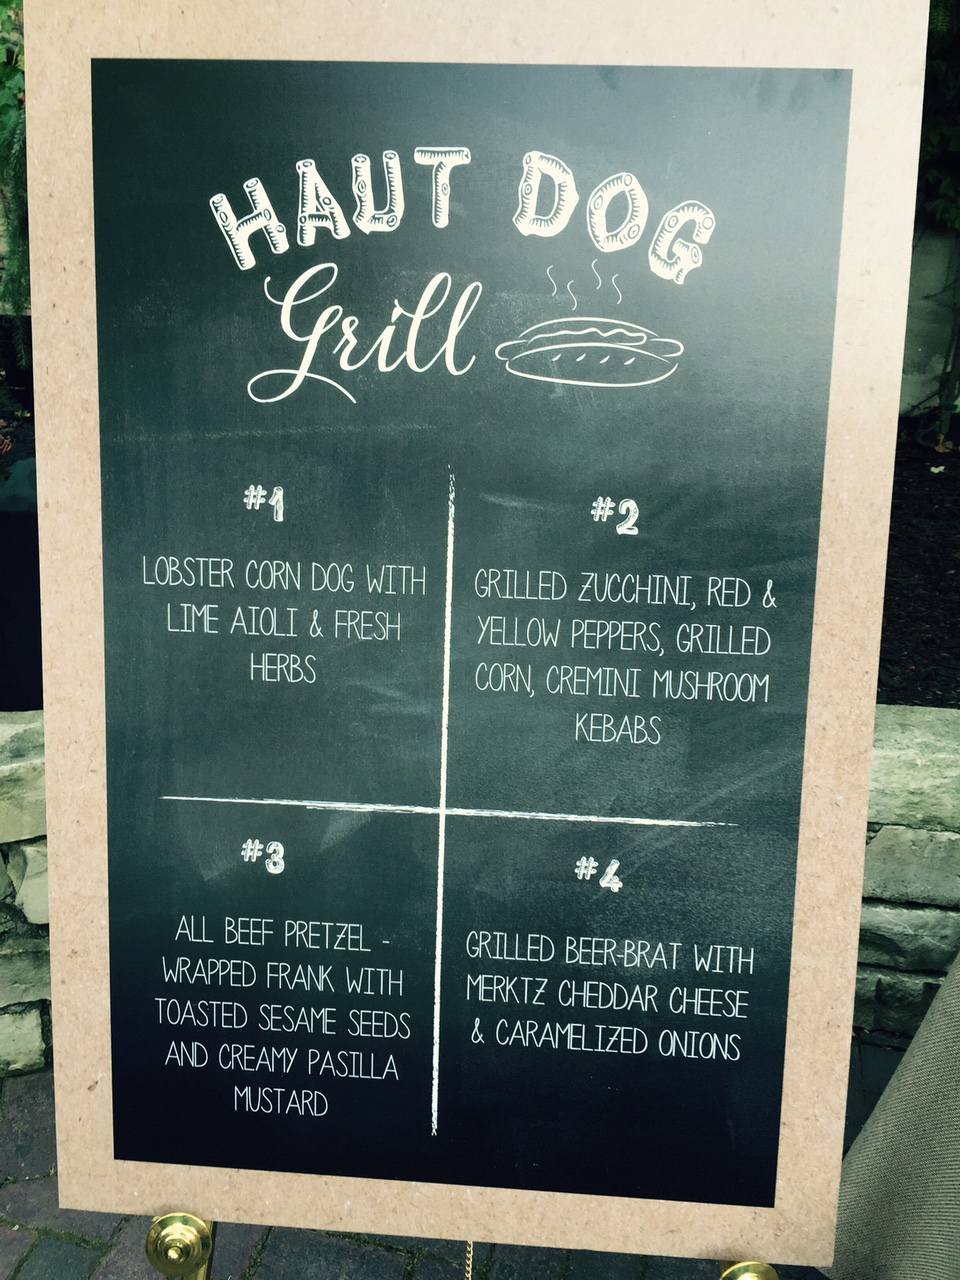 The Haut Dog Grill | The Knot Camp Networking Event